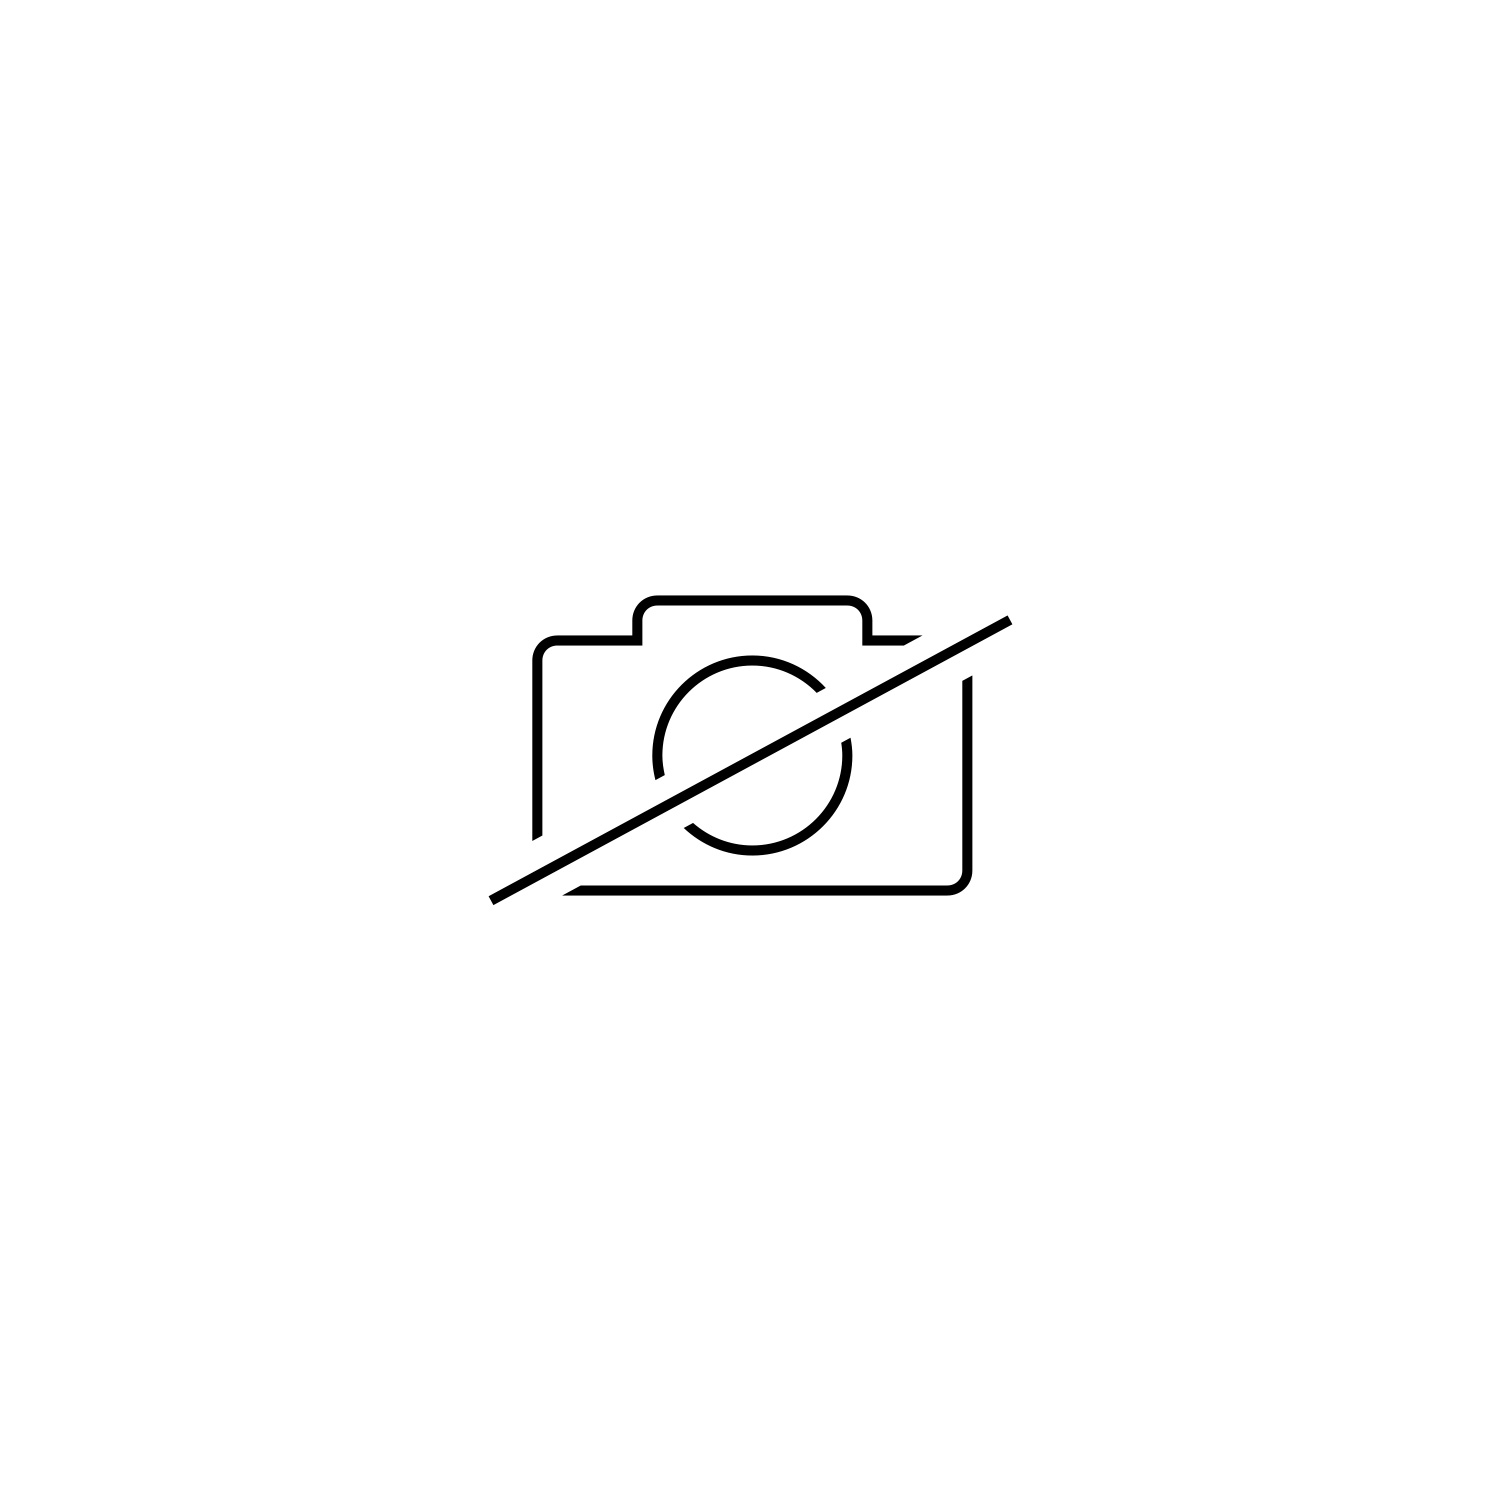 quattro outdoorjacket, Mens, grey/black, S